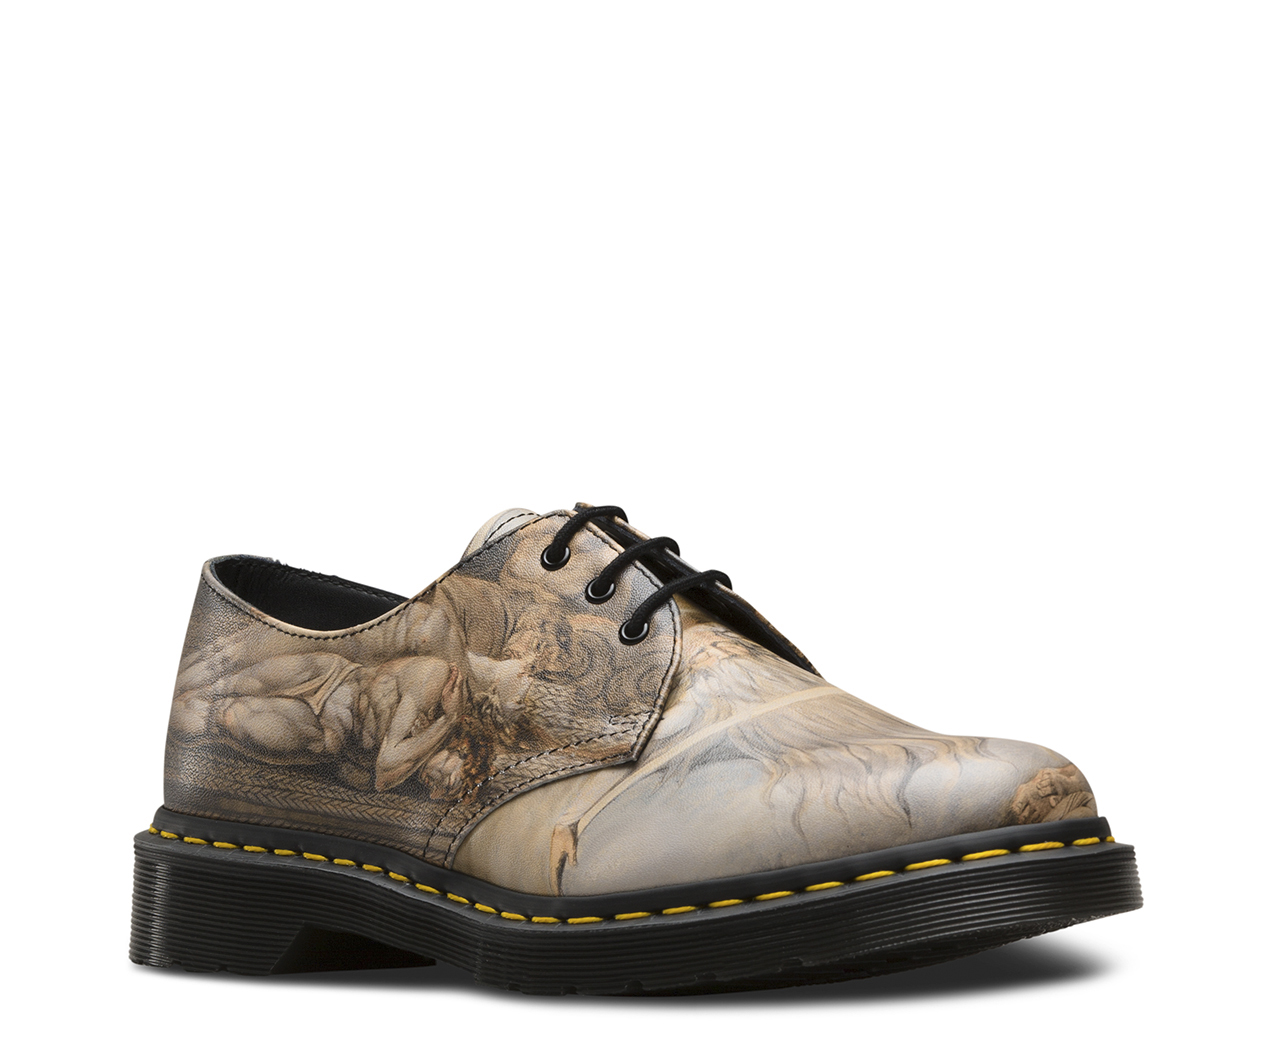 Dr Martens Unisex 1461 William Blake 3-Eye Leather Lace Up Shoe White-White-5 Size 5 J9gC27v8